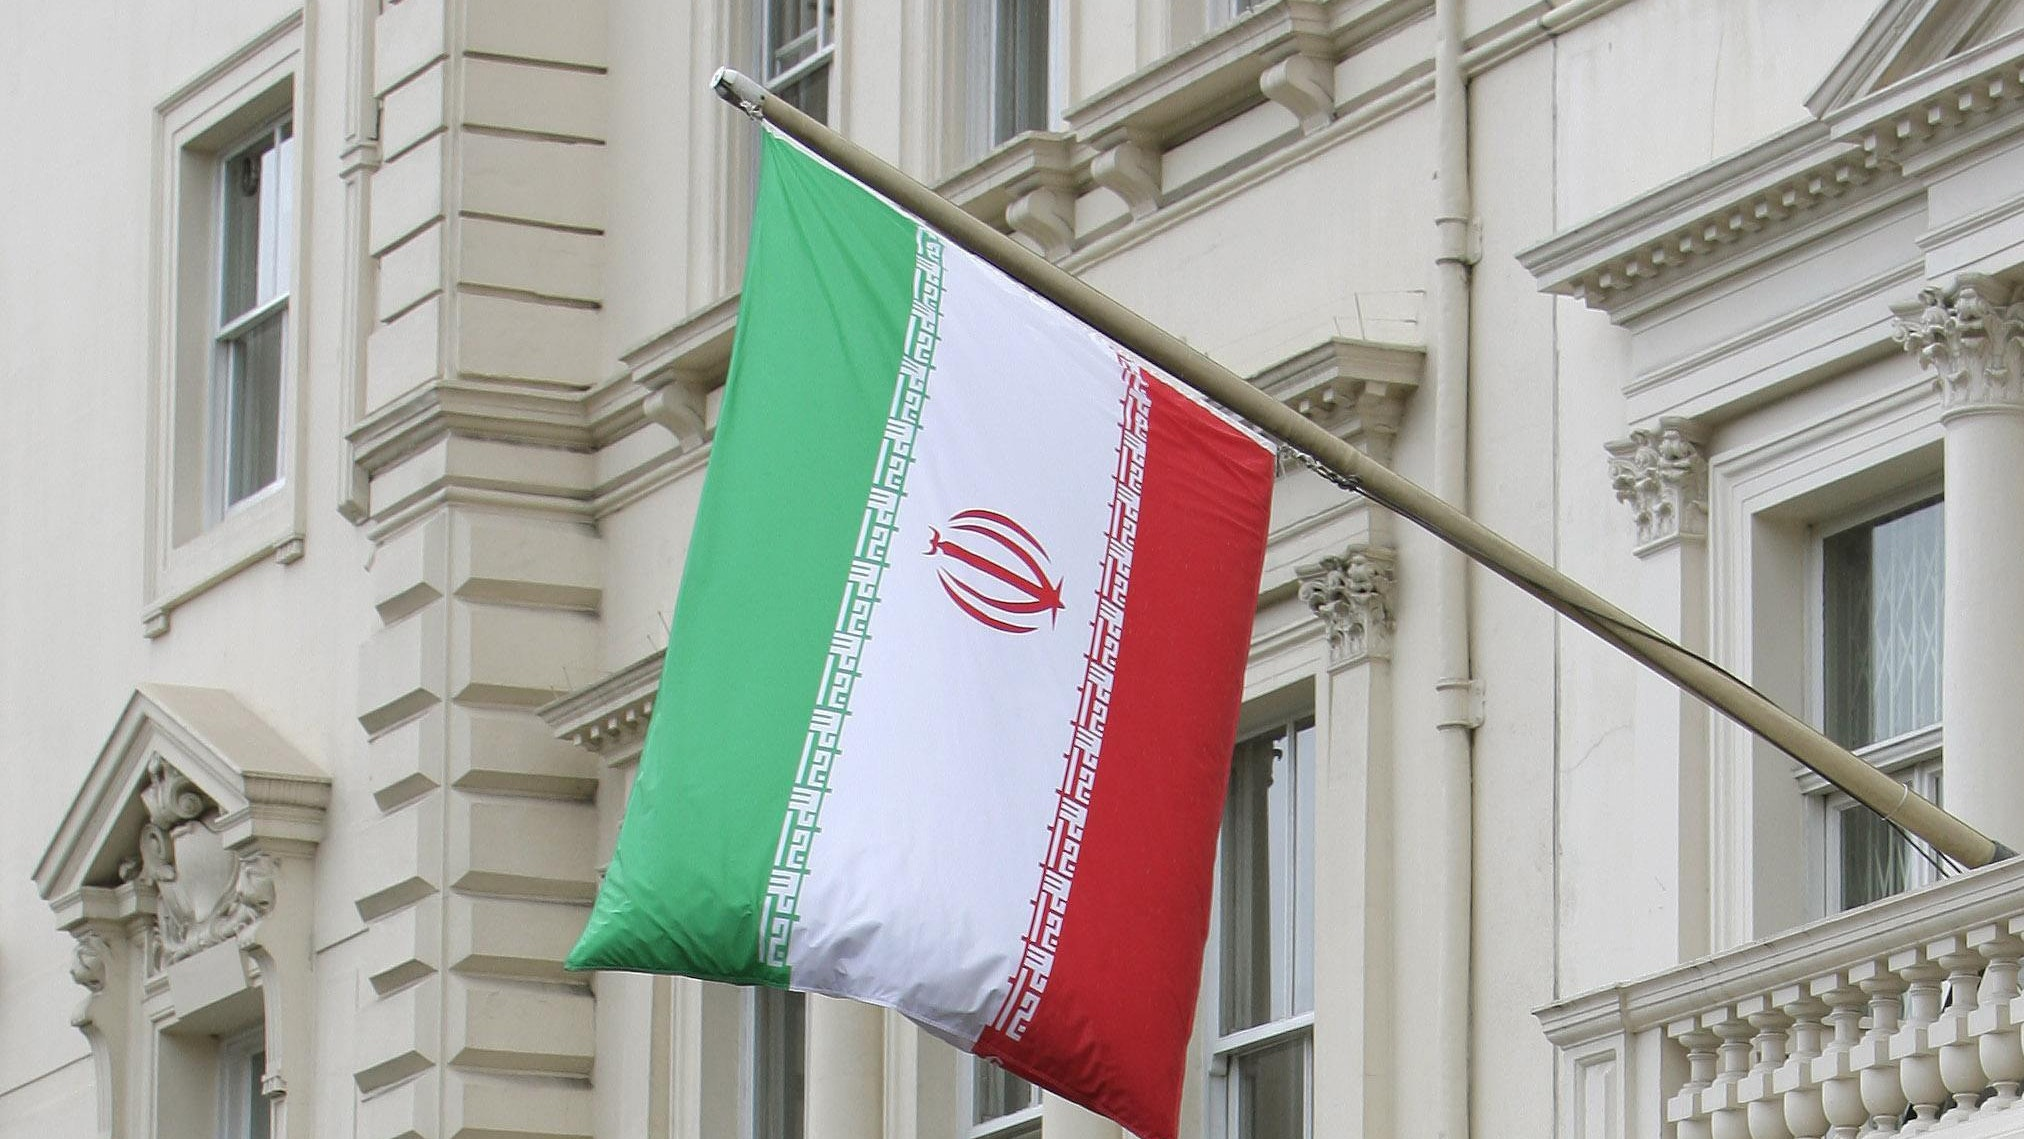 British-Iranian dual citizen jailed 6 years for spying